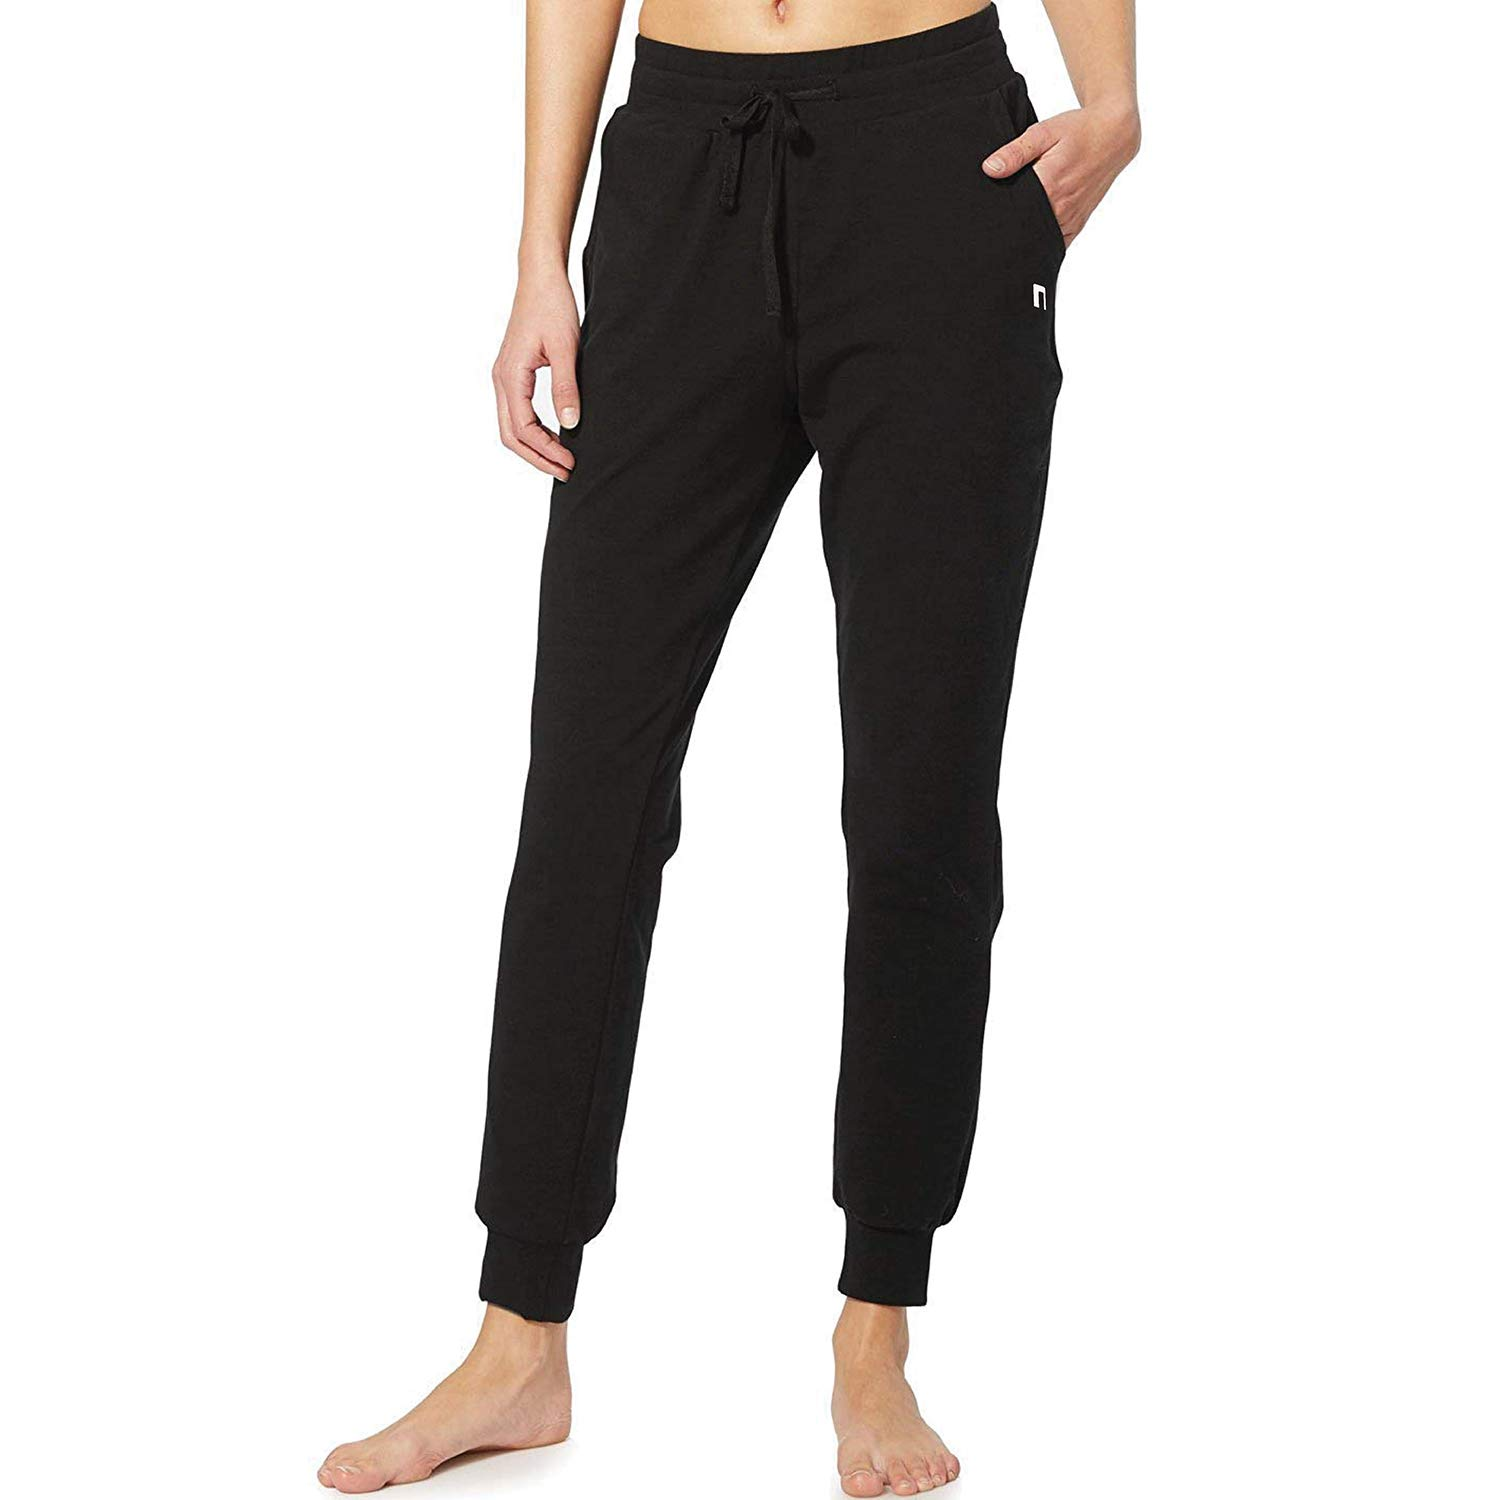 Cotton Workout Yoga Sweat Pants Black N1Fit Sweatpants Women Joggers Running